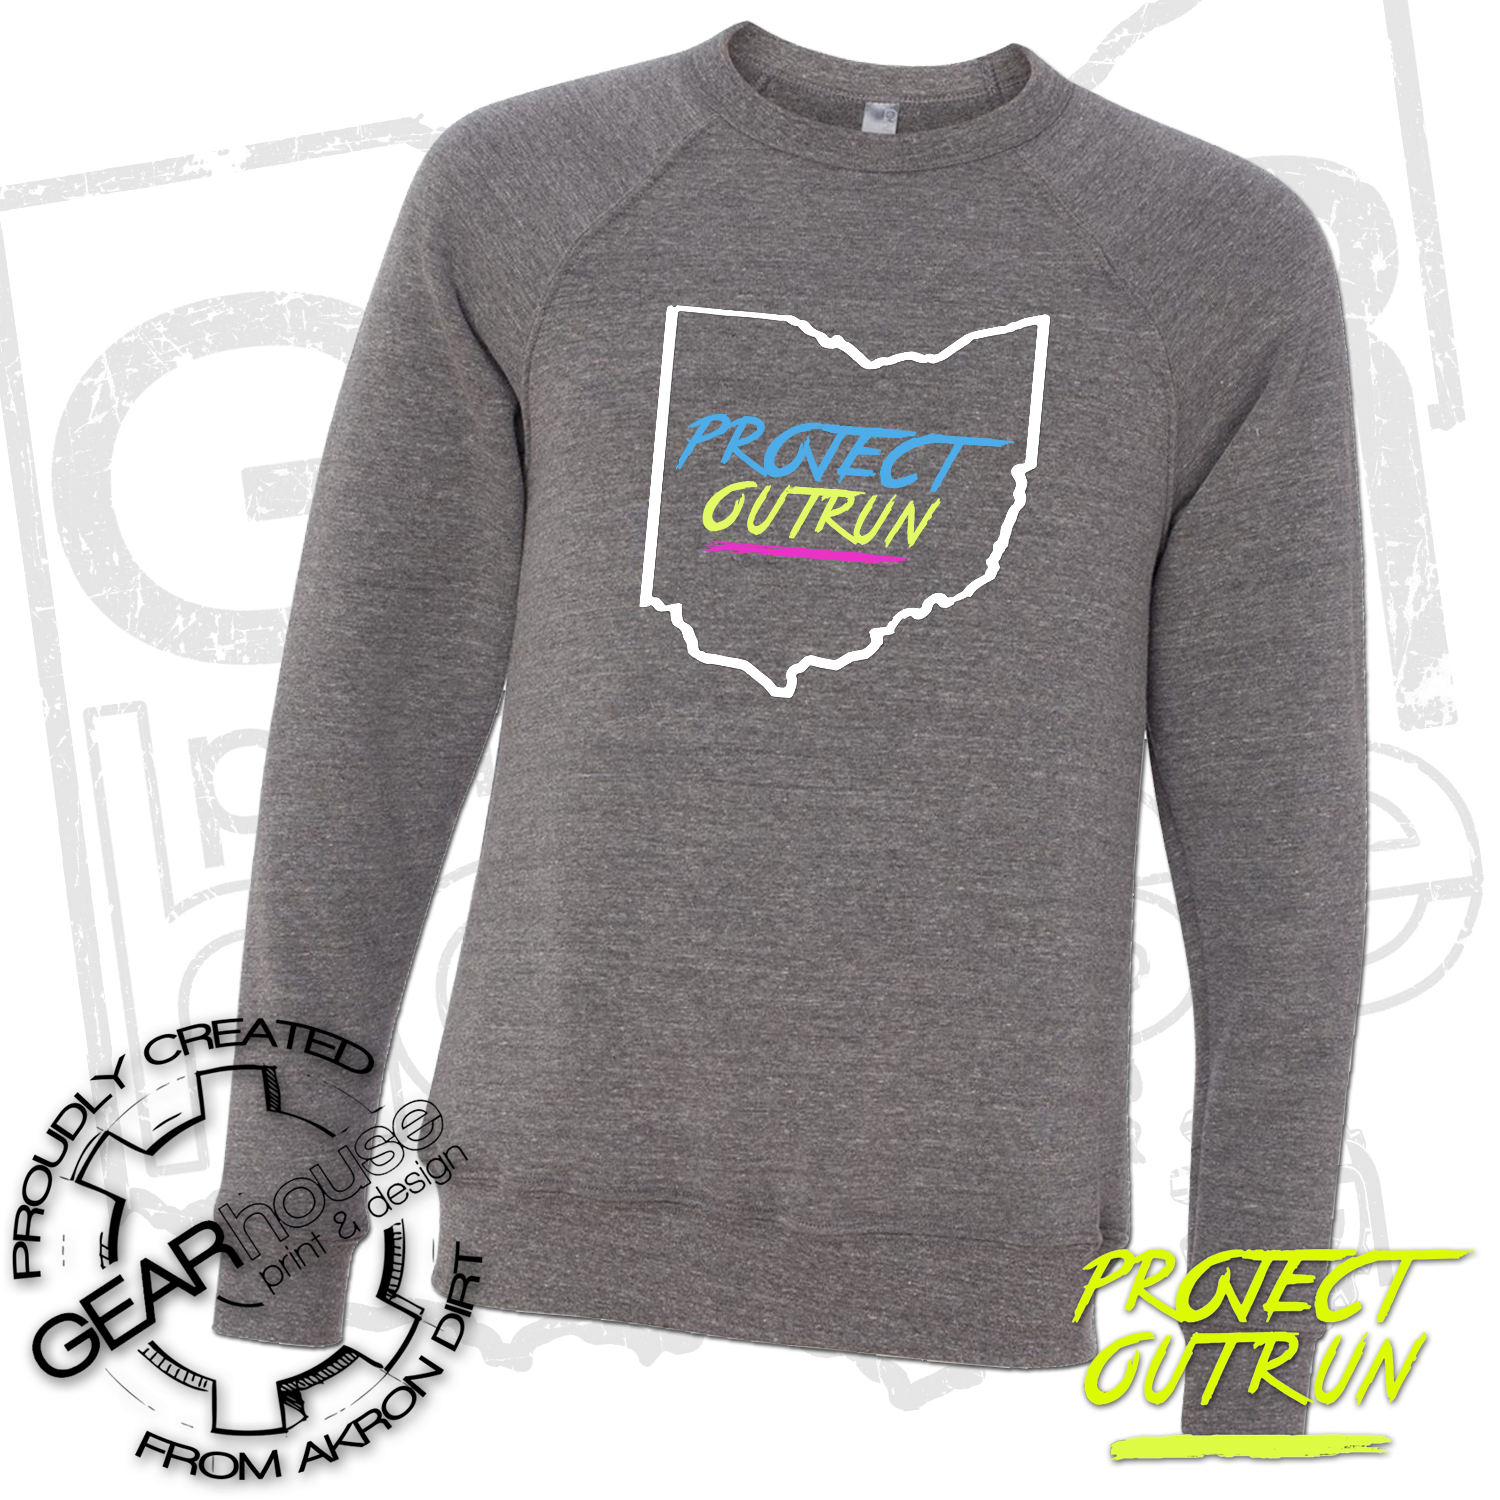 Project Outrun Unisex Ohio Soft Fleece